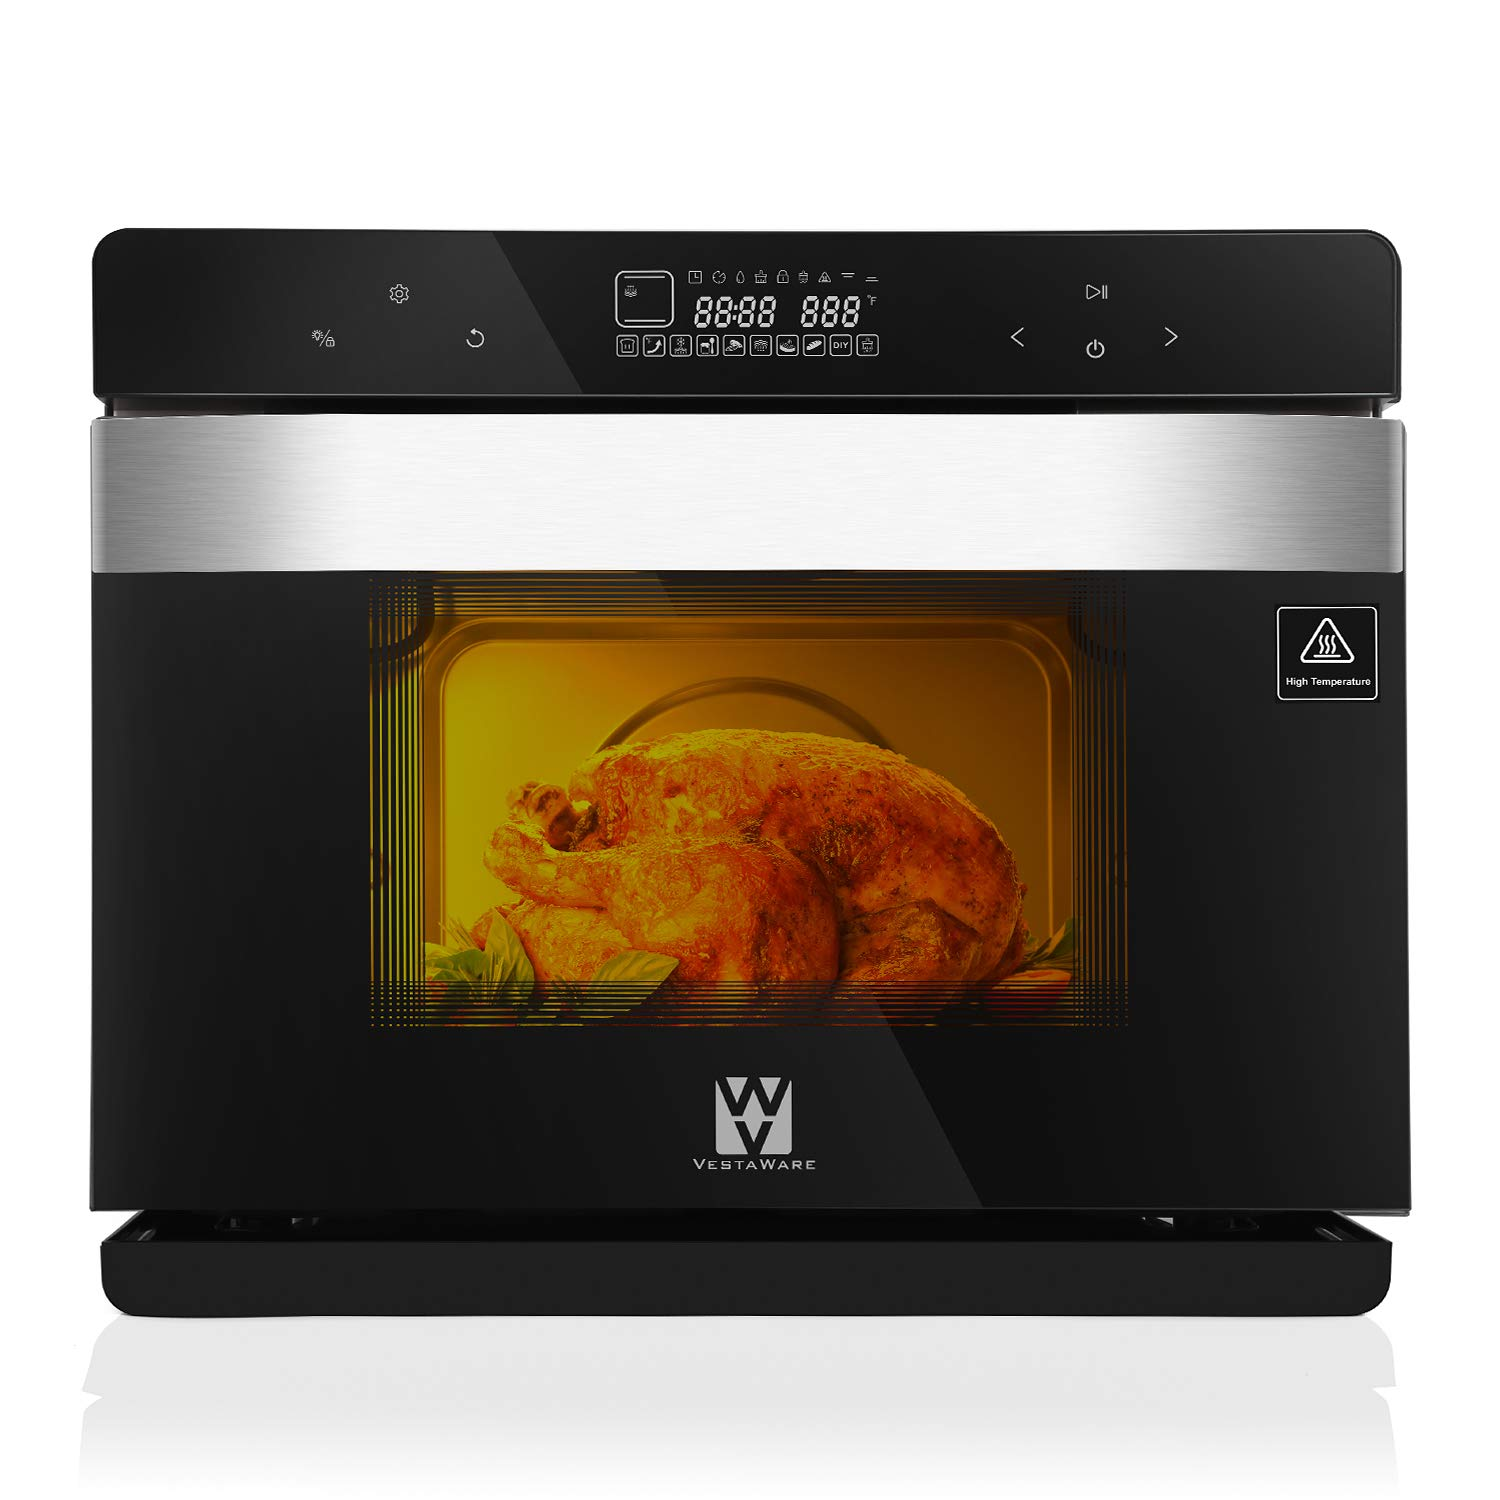 Vestaware Convection Steam Oven, 32Qt LED Display Toaster Oven Countertop Wall Smart Oven with 5 Predefined Programs/4 Menus with 32 Predefined Recipes/DIY modes Includes Baking Pan Grill Rack Mitts by Vestaware